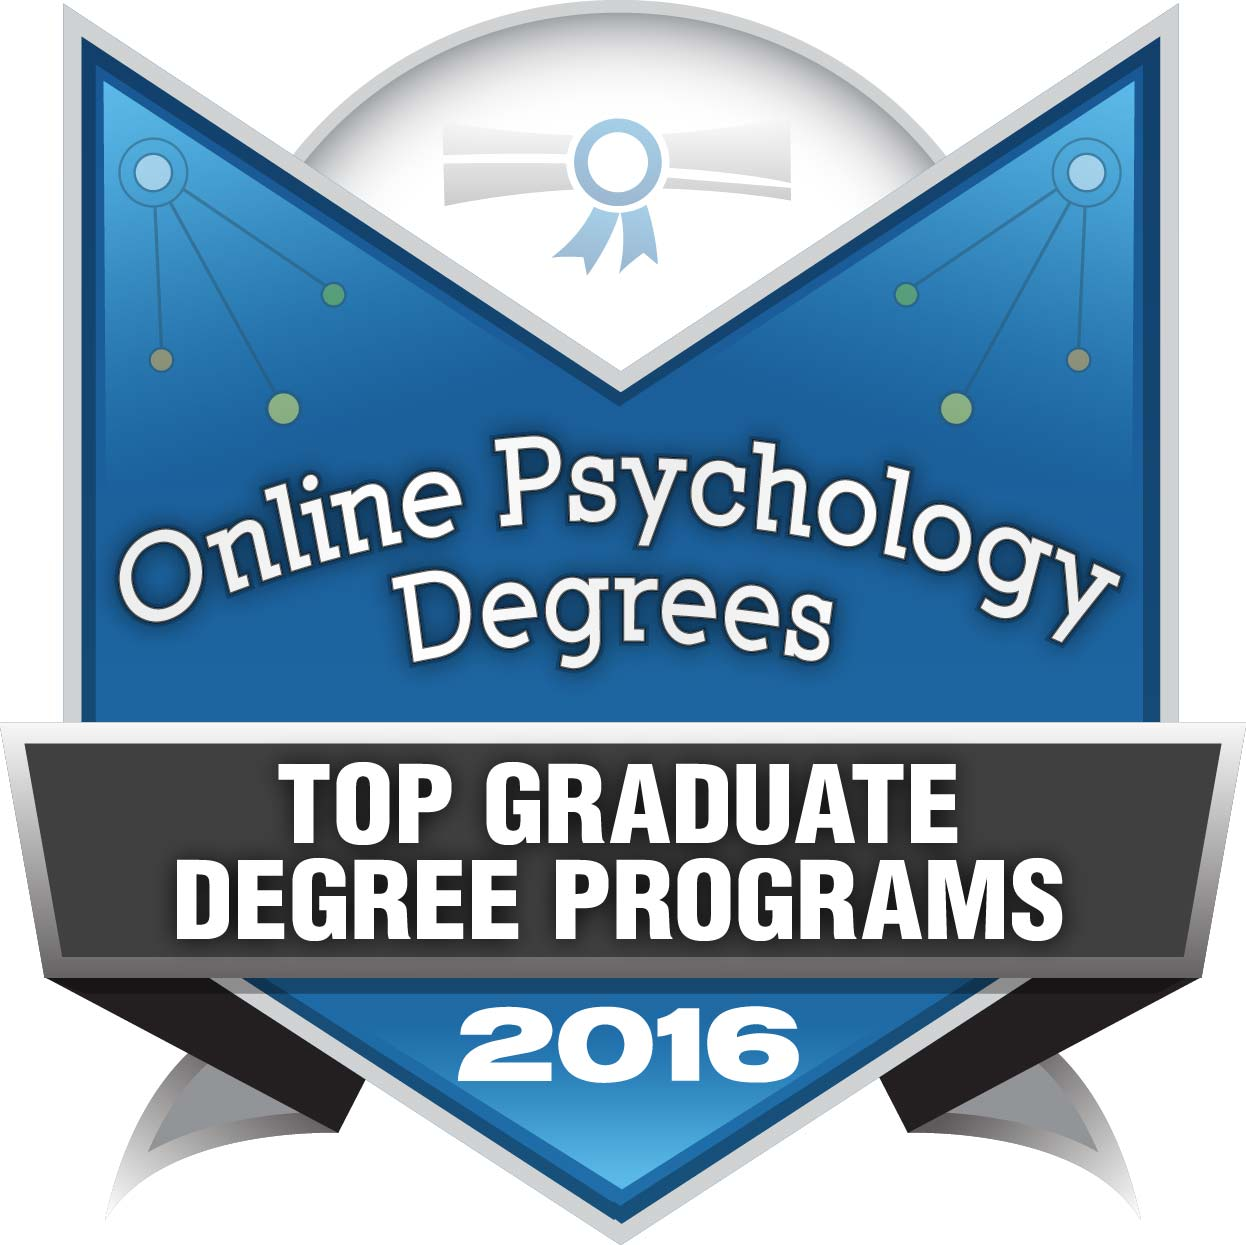 Ranking Top 25 Graduate Sports Psychology Degree Programs. Preschool Welcome Letter Template. Jobs For Maine Graduates. Payroll Check Stub Template Free. Ribbon Cutting Invite Template. Pandora Owl Graduation Charm. Graduate Schools In Tennessee. Congratulations College Graduate Quotes. High School Graduation Party Invitations